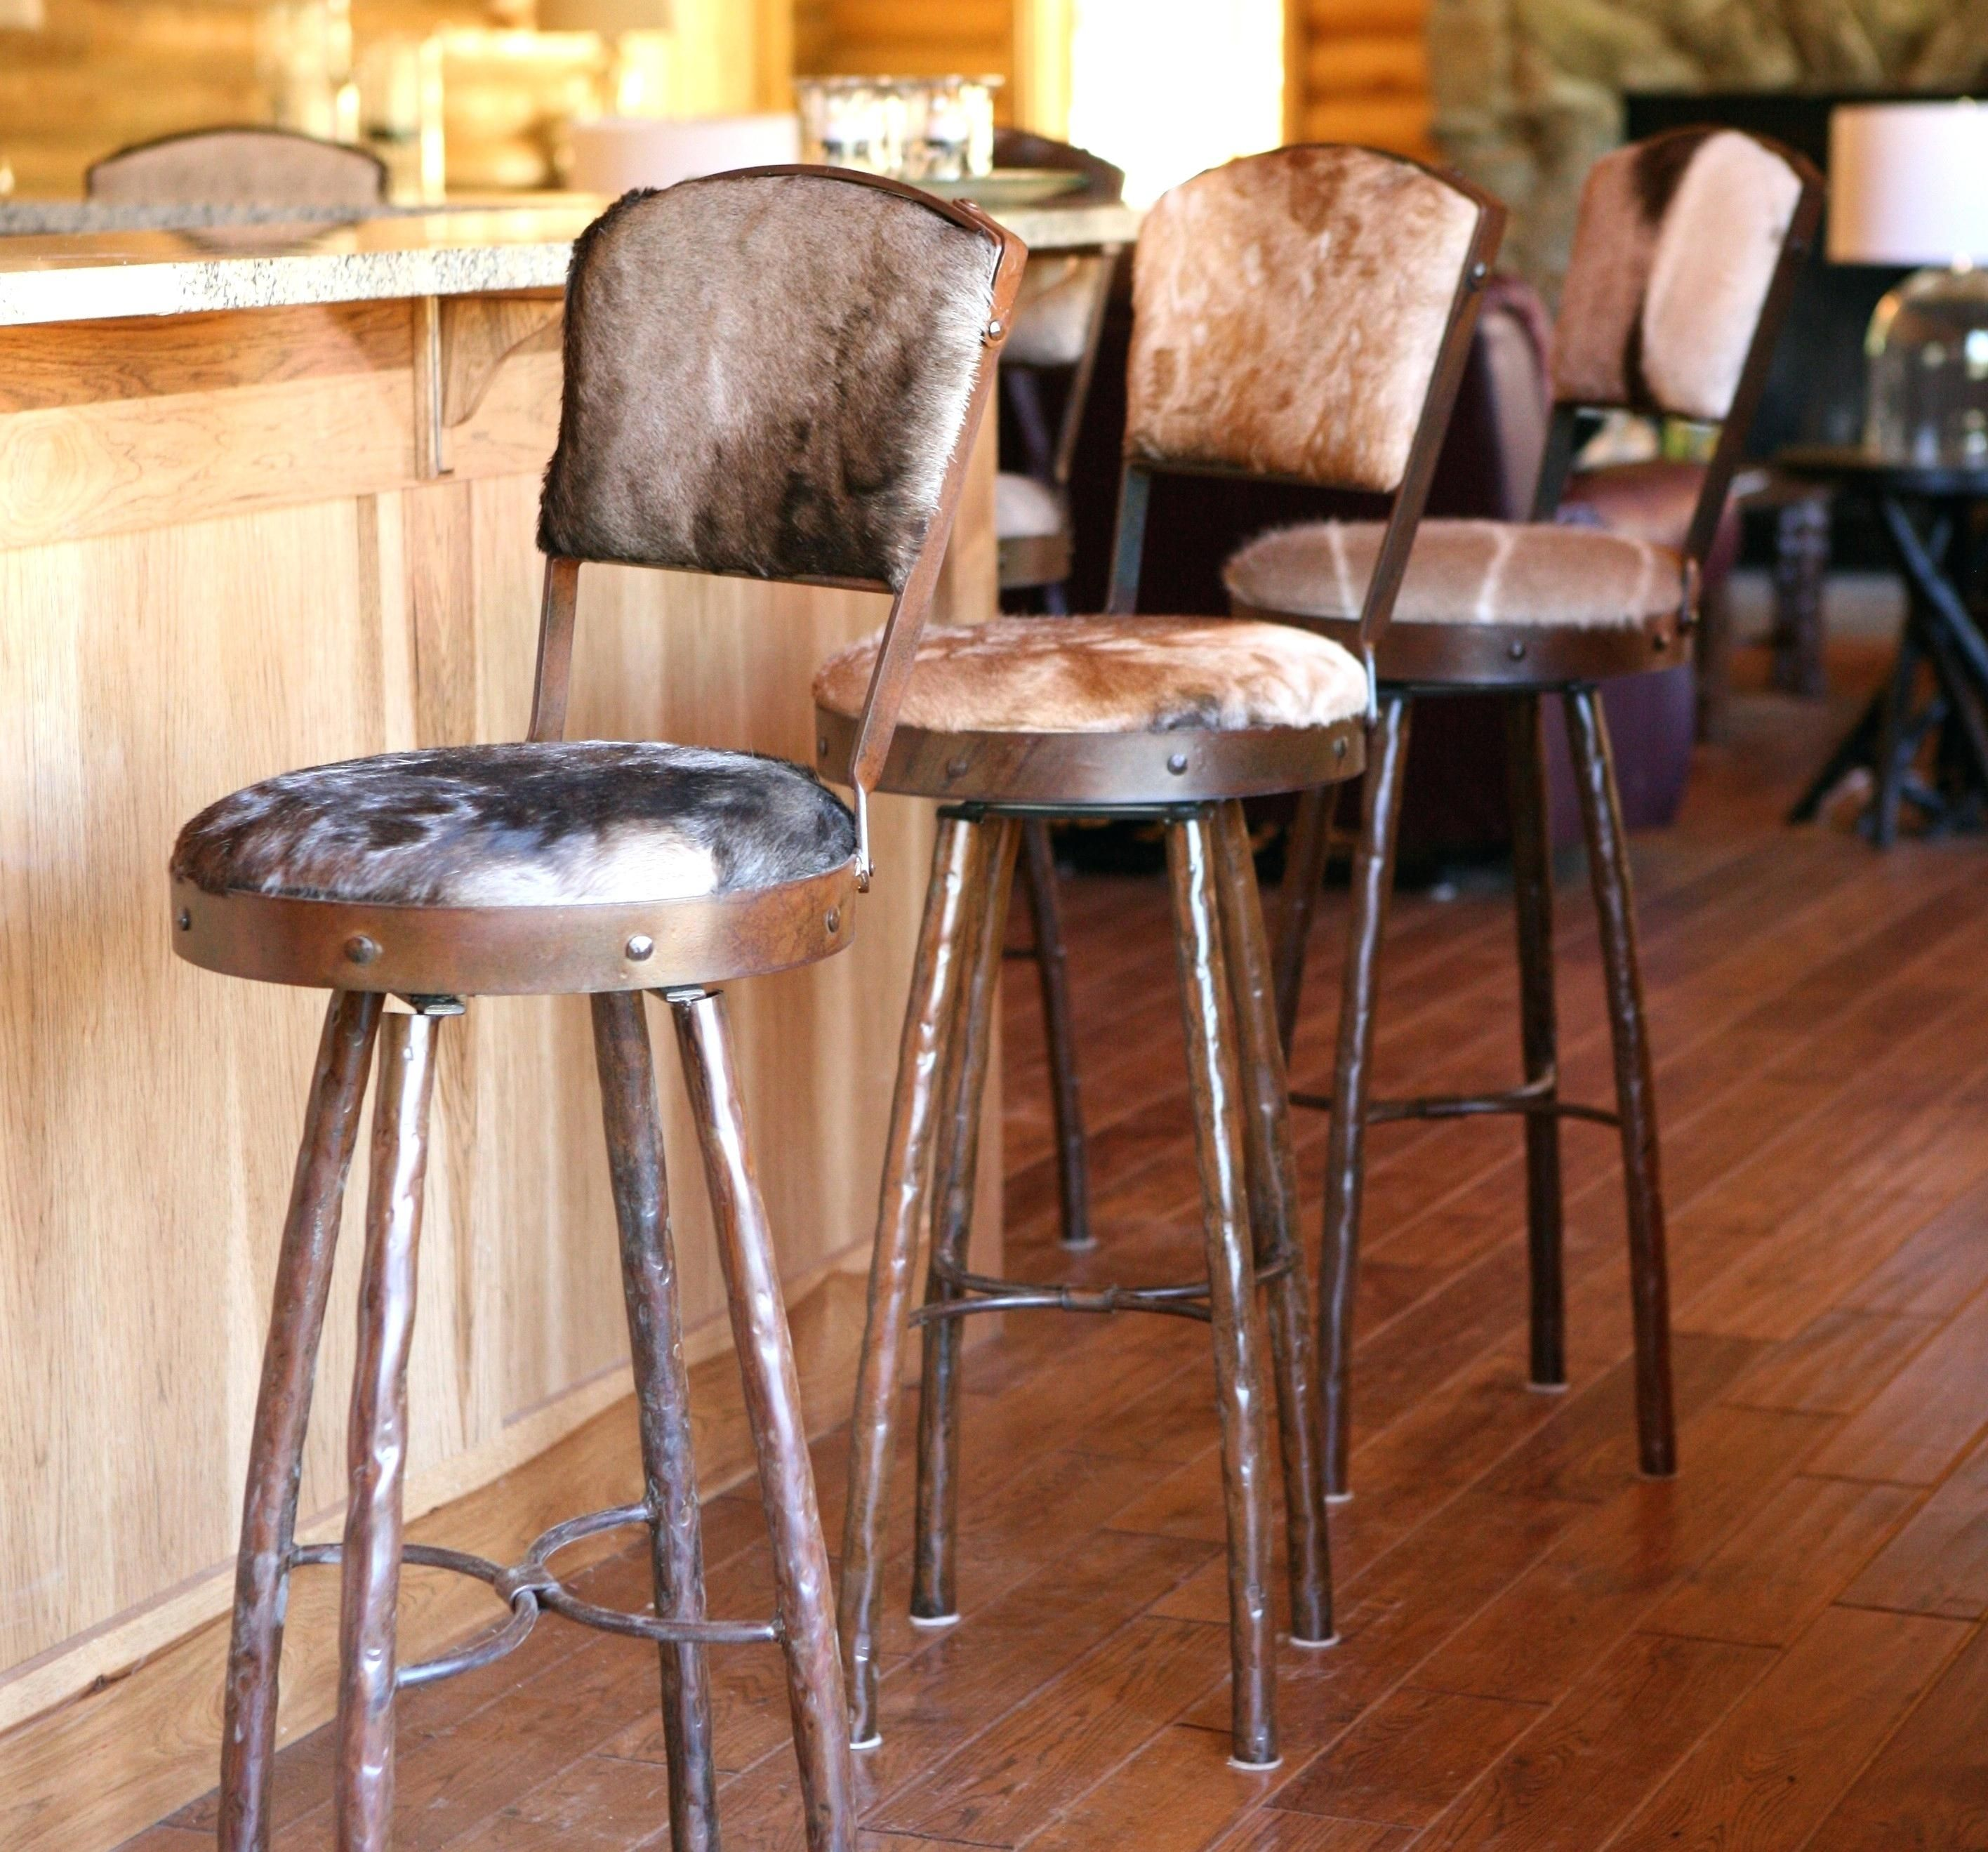 Round Metal Bar Stools Stuhlede Com Kitchen Stools With Back Iron Bar Stools Rustic Bar Stools